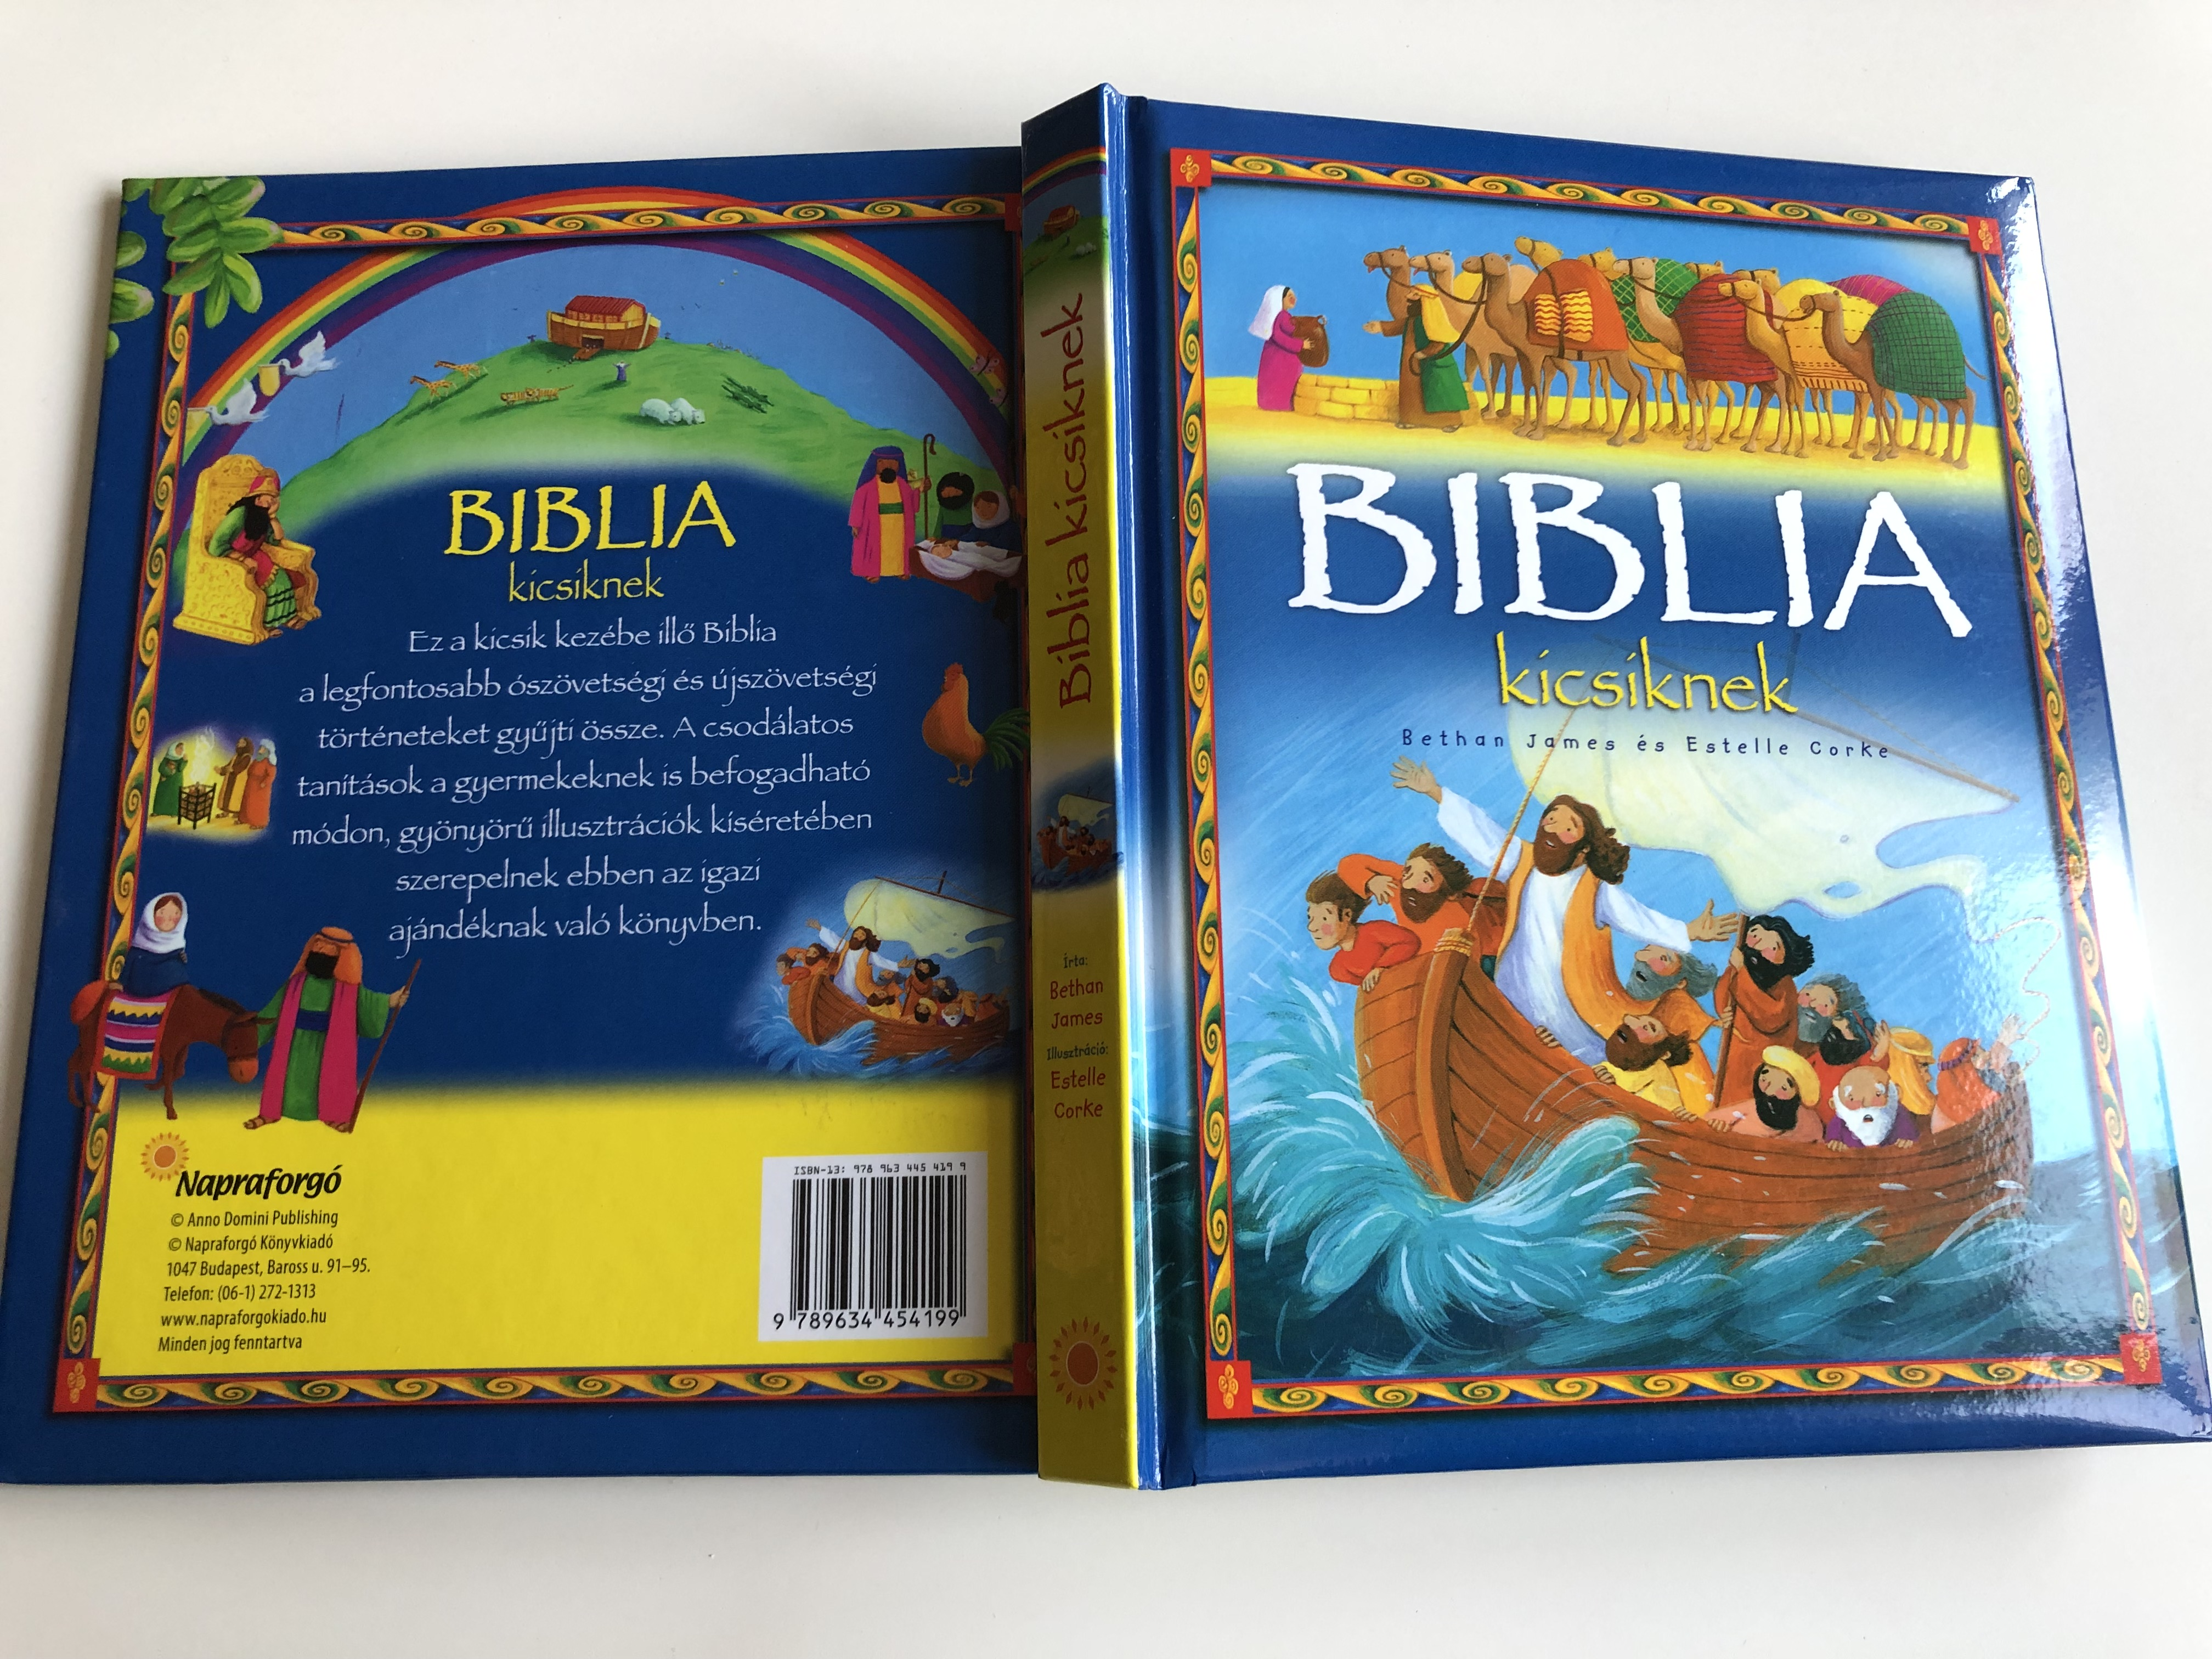 biblia-kicsiknek-by-bethan-james-and-estelle-corke-hungarian-translation-of-my-bible-story-book-hardcover-2013-napraforg-kiad-15-.jpg